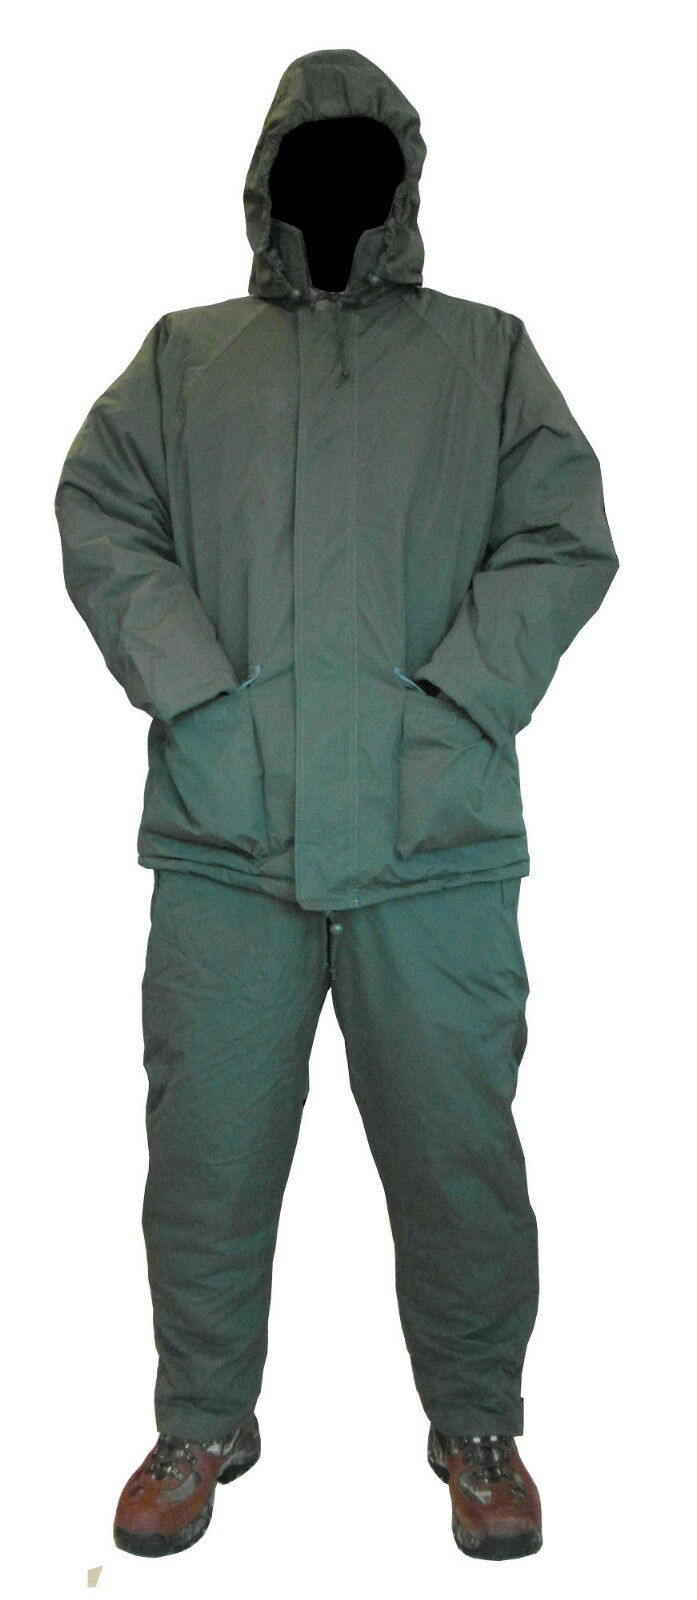 Benelle All Weather Thermal 'Soft Touch' Waterproof 2 Pce Suits Größes S-XXXL